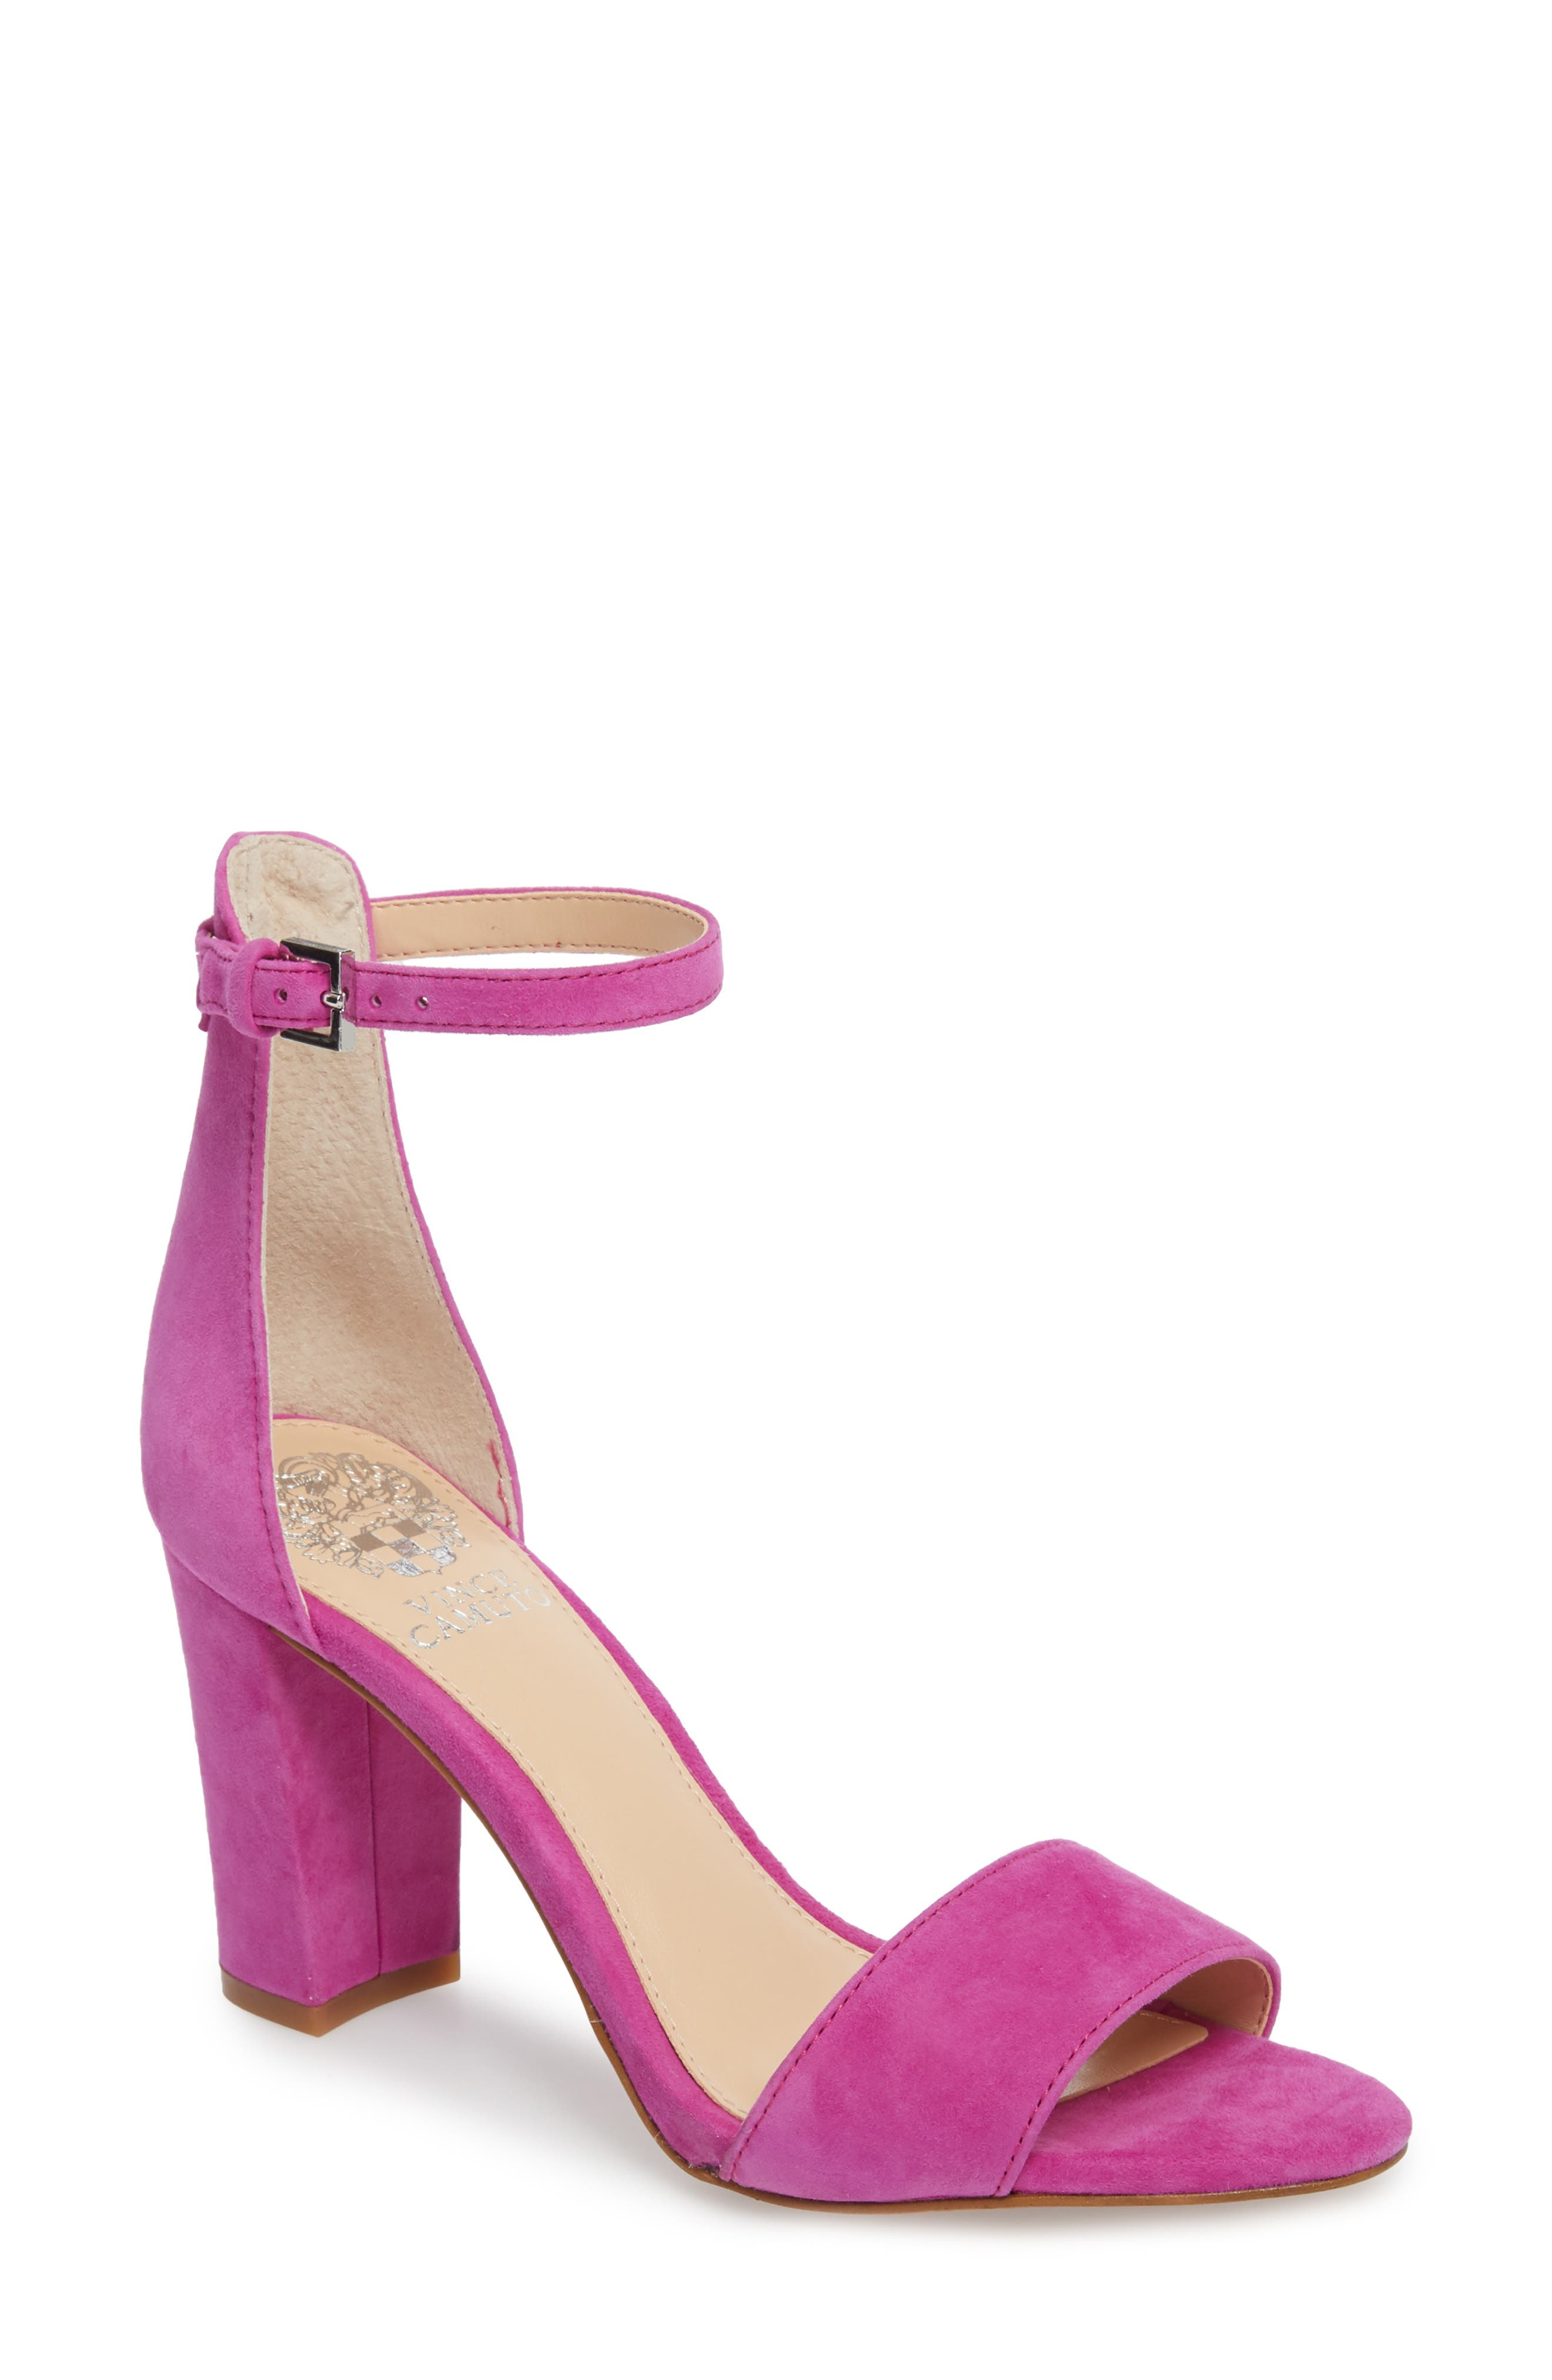 Corlina Ankle Strap Sandal,                             Main thumbnail 1, color,                             Drama Pink Suede